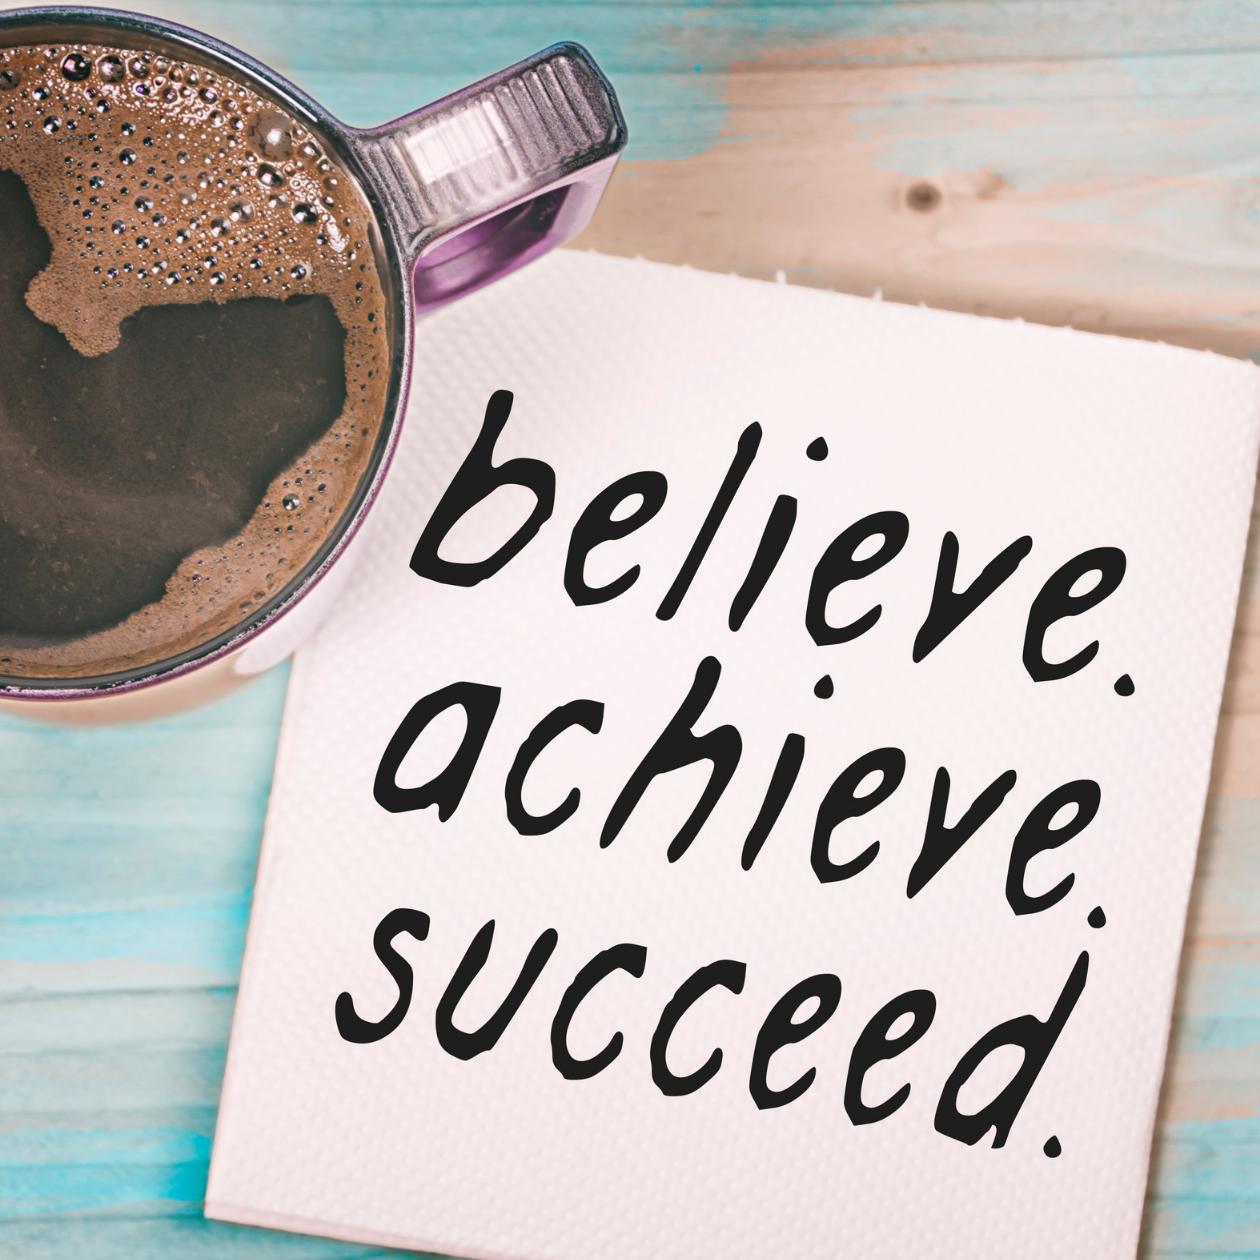 Believe you can and you will succeed